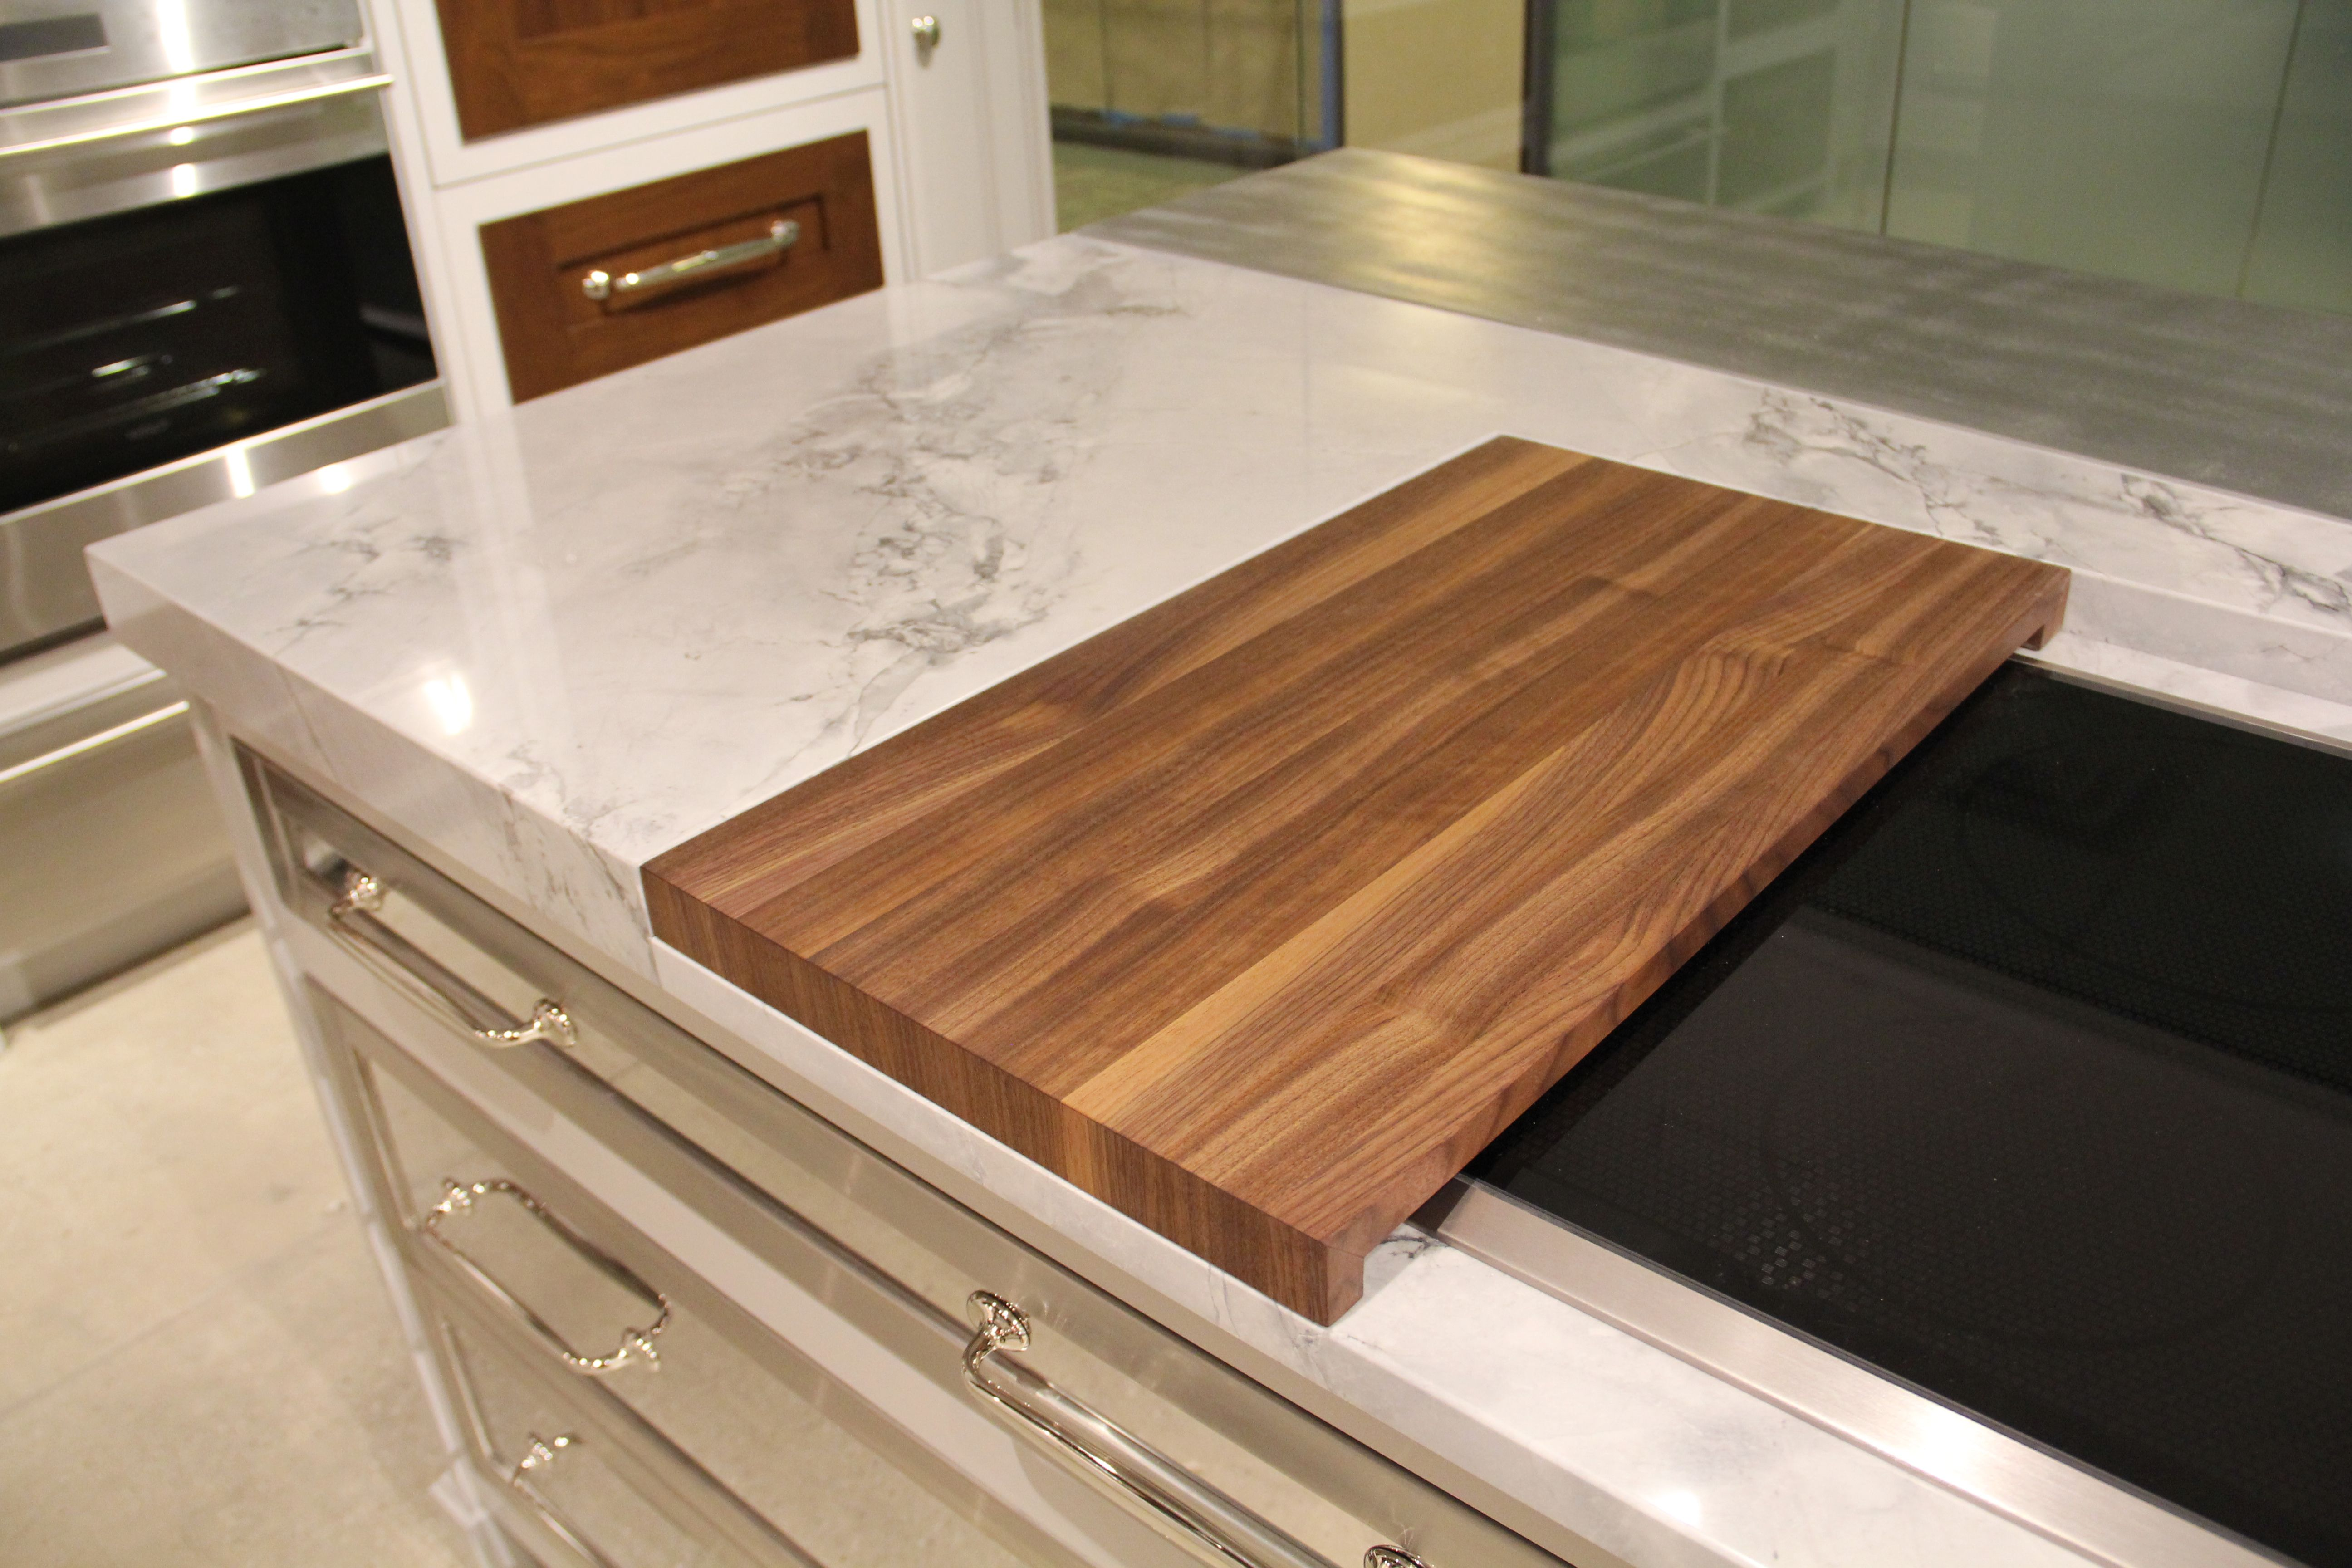 Pin By Engrain Wood Countertops On Engrain Wood Countertops White Kitchen Remodeling Kitchen Island With Sink